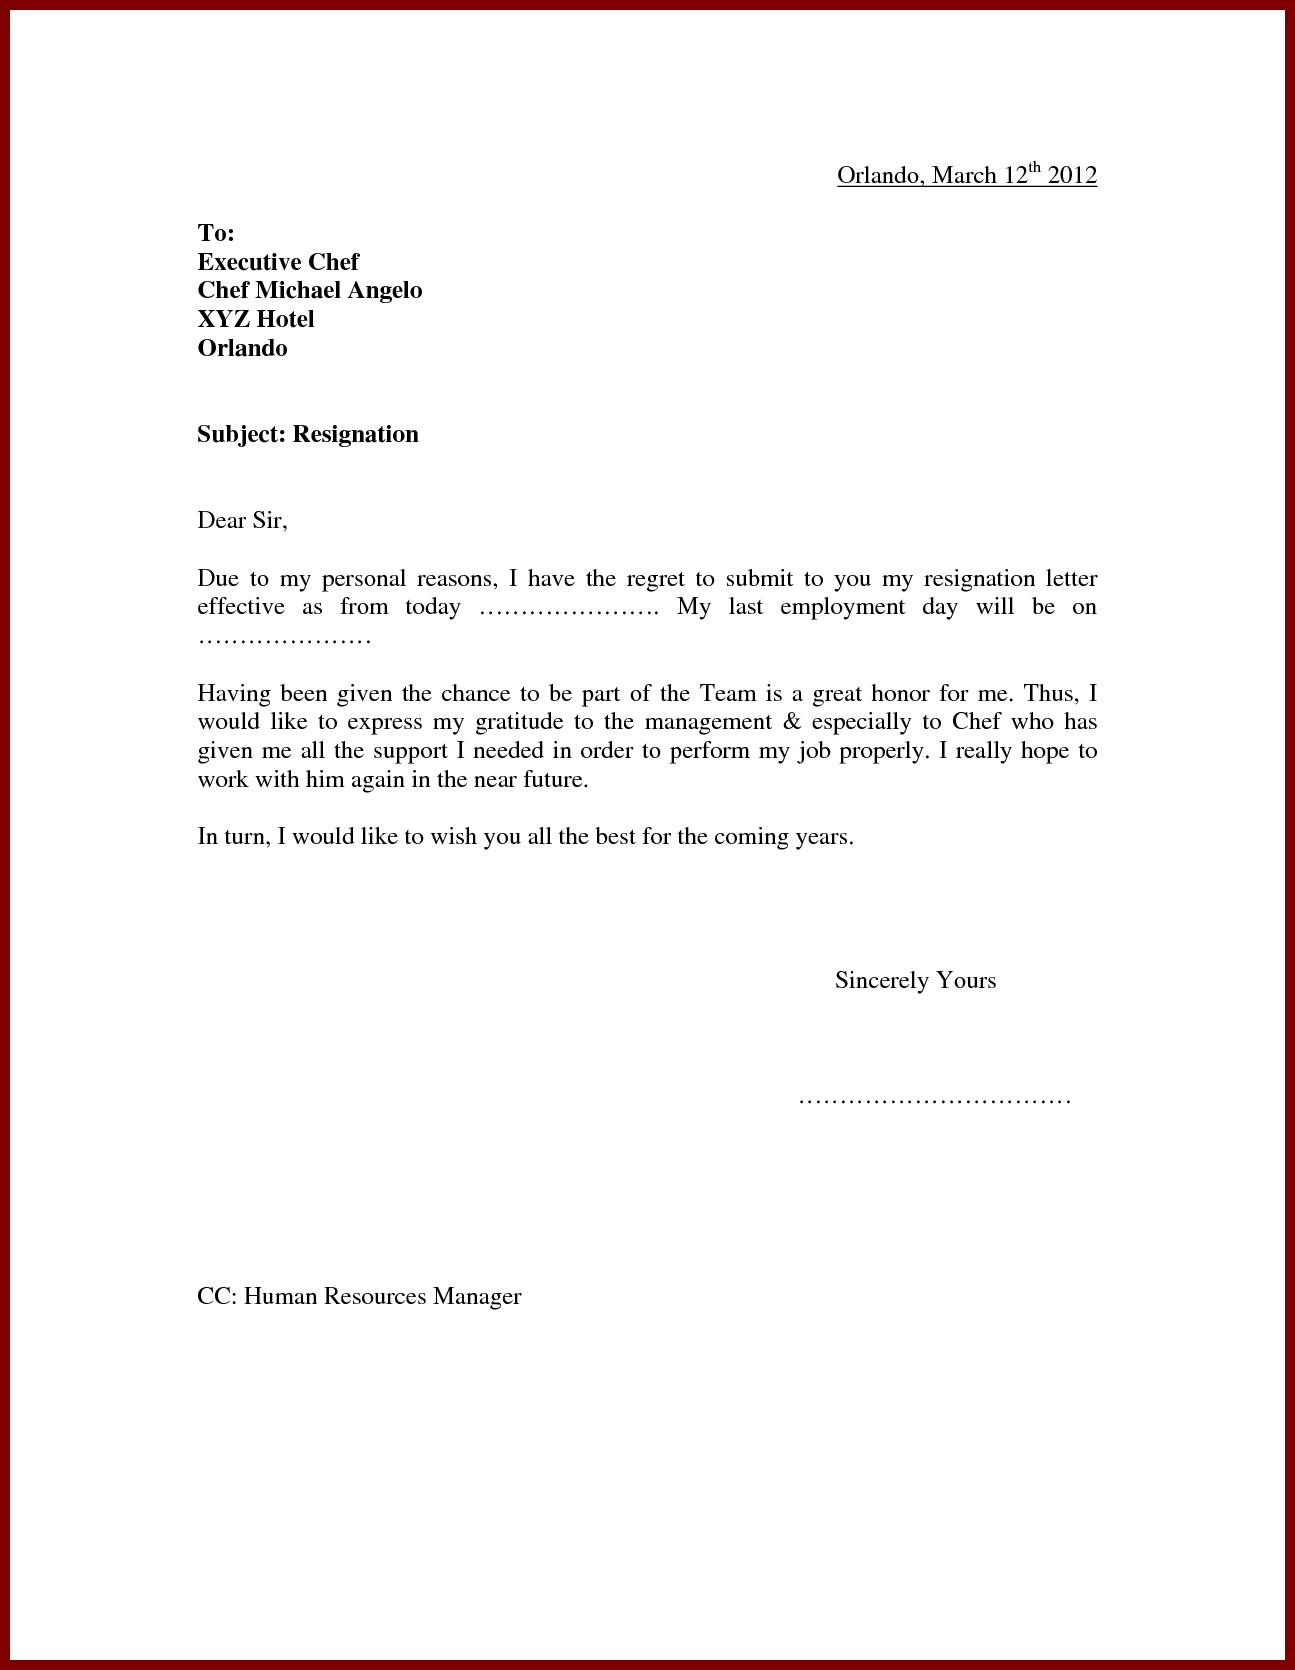 samples of resignation letters for personal reasons 86650939png 12951670